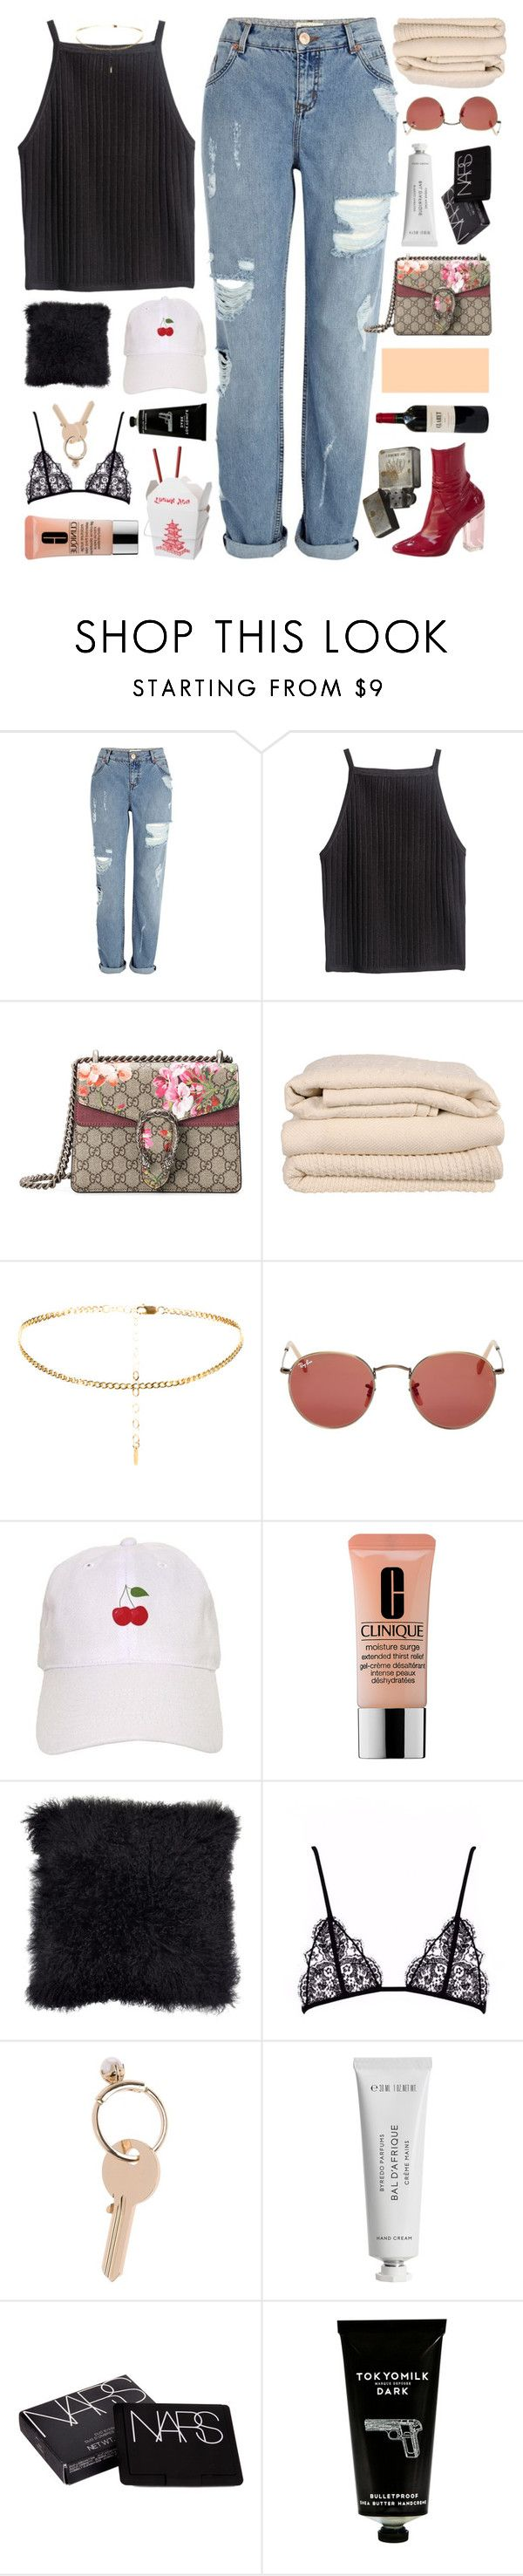 """nouveau"" by cheruhb ❤ liked on Polyvore featuring River Island, Gucci, Brahms Mount, Ray-Ban, Clinique, Maison Margiela, Byredo, NARS Cosmetics and TokyoMilk"